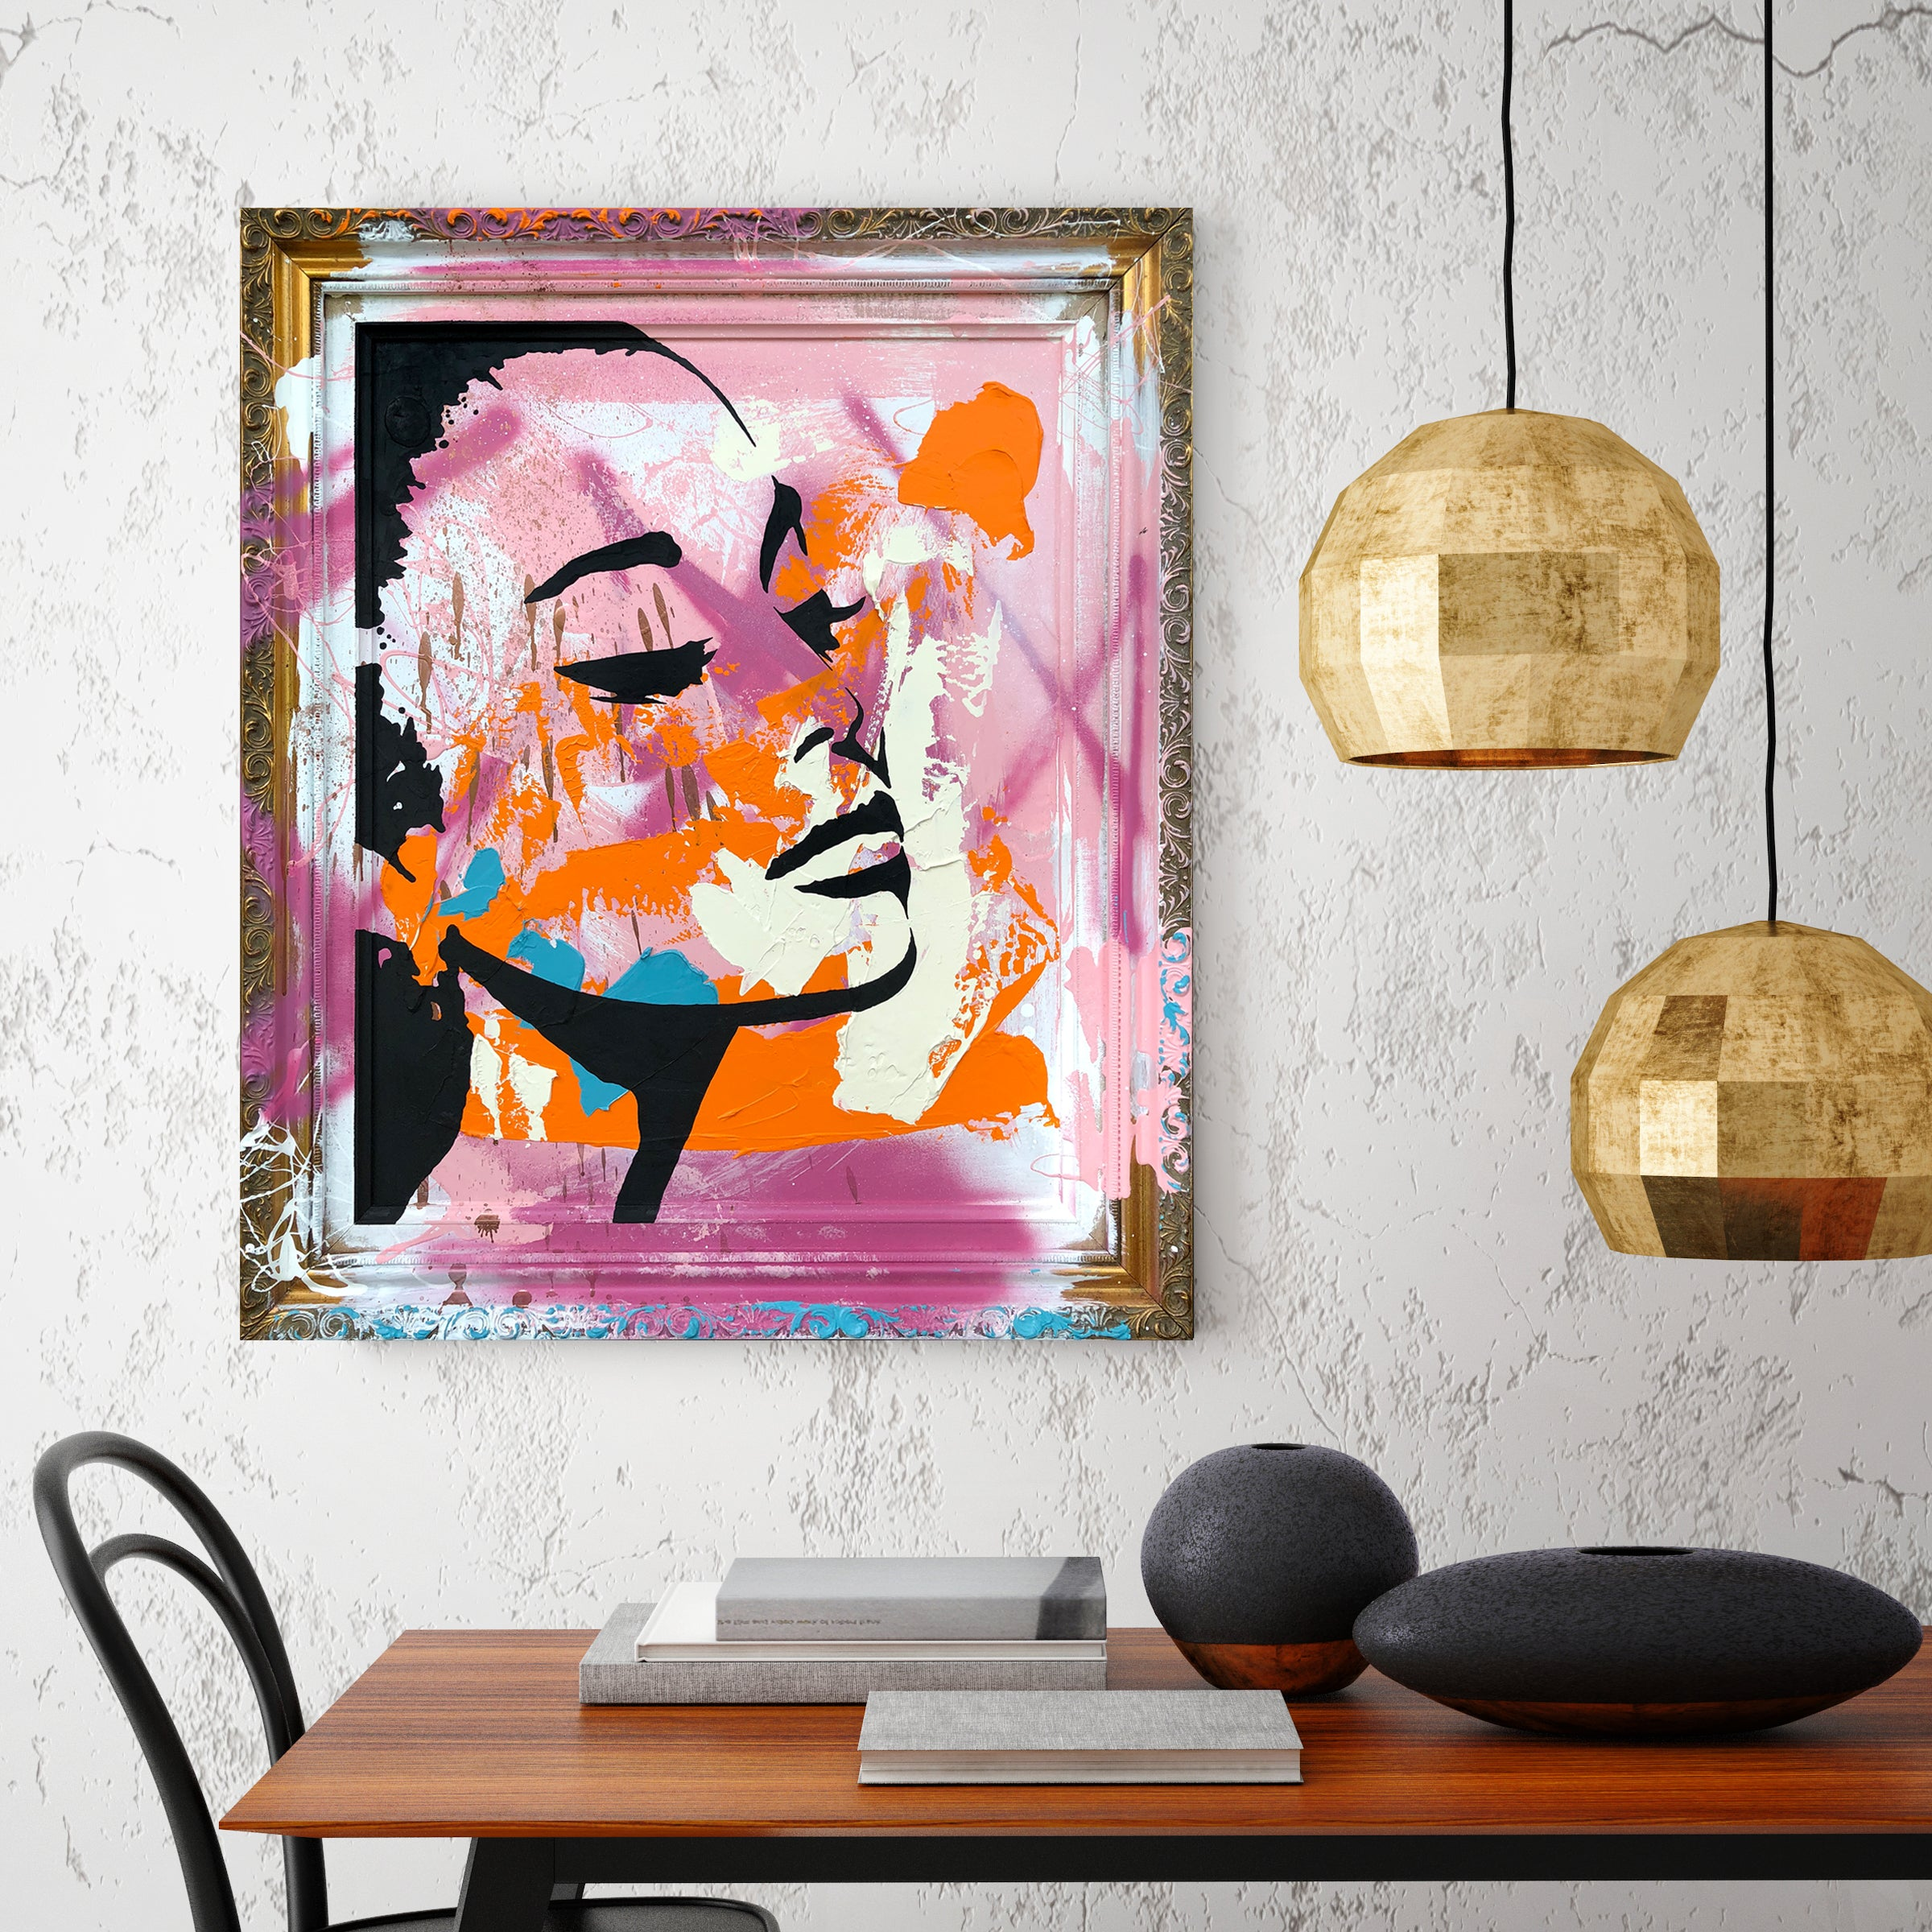 Contemporary Classic -  Original Painted Artwork